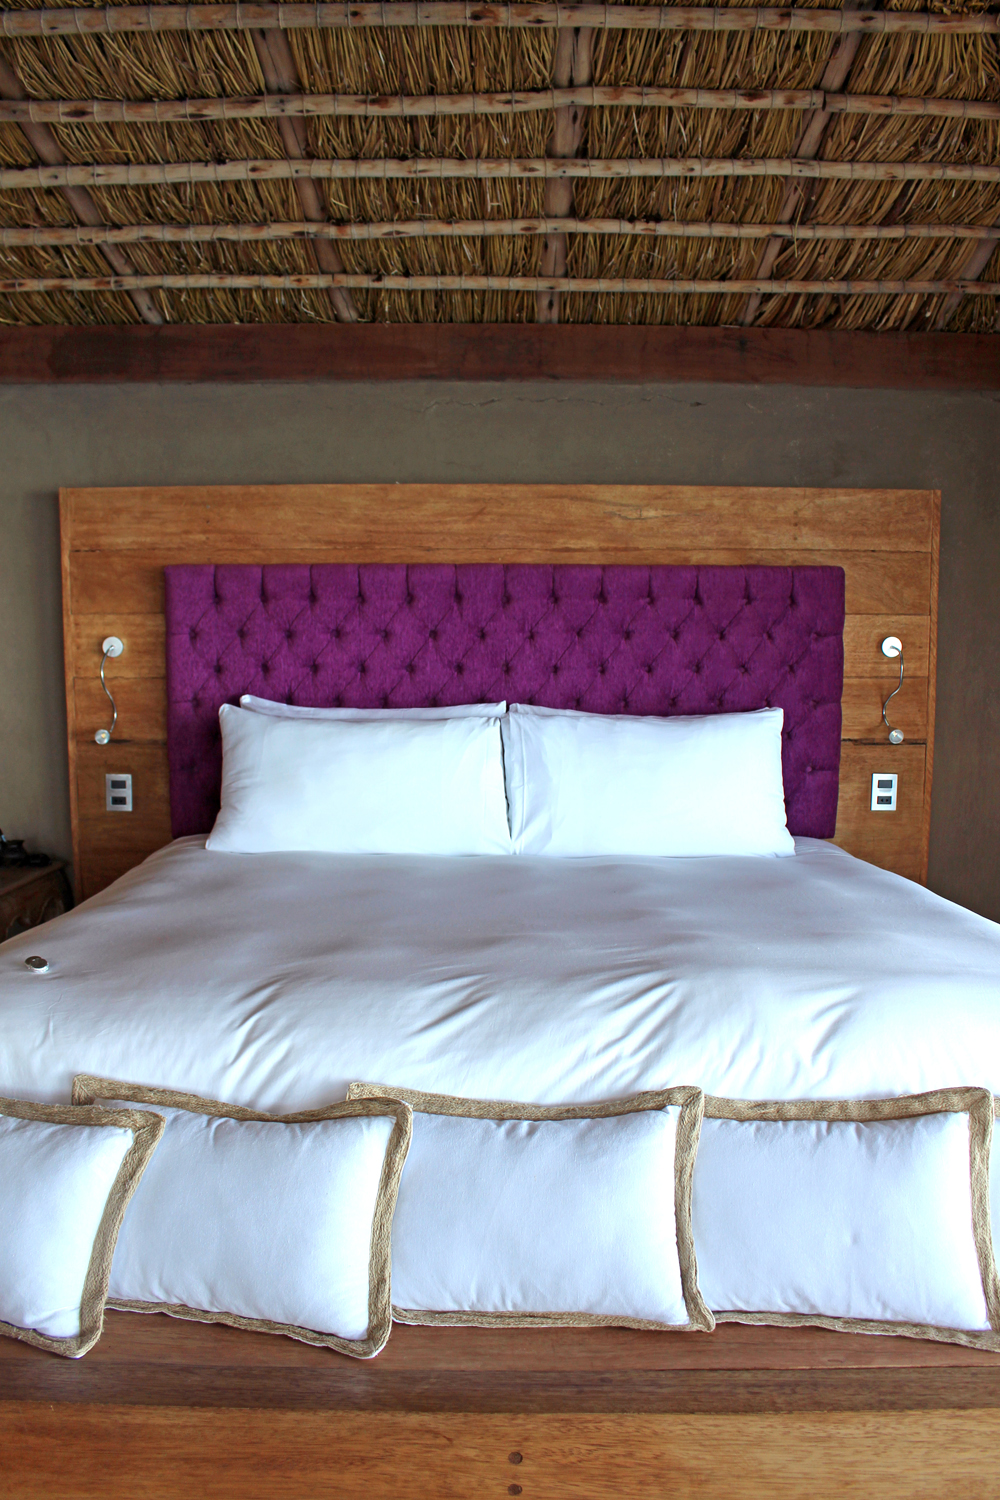 Bedroom at Amantica Lodge, Lake Titicaca, Peru - South America travel blog